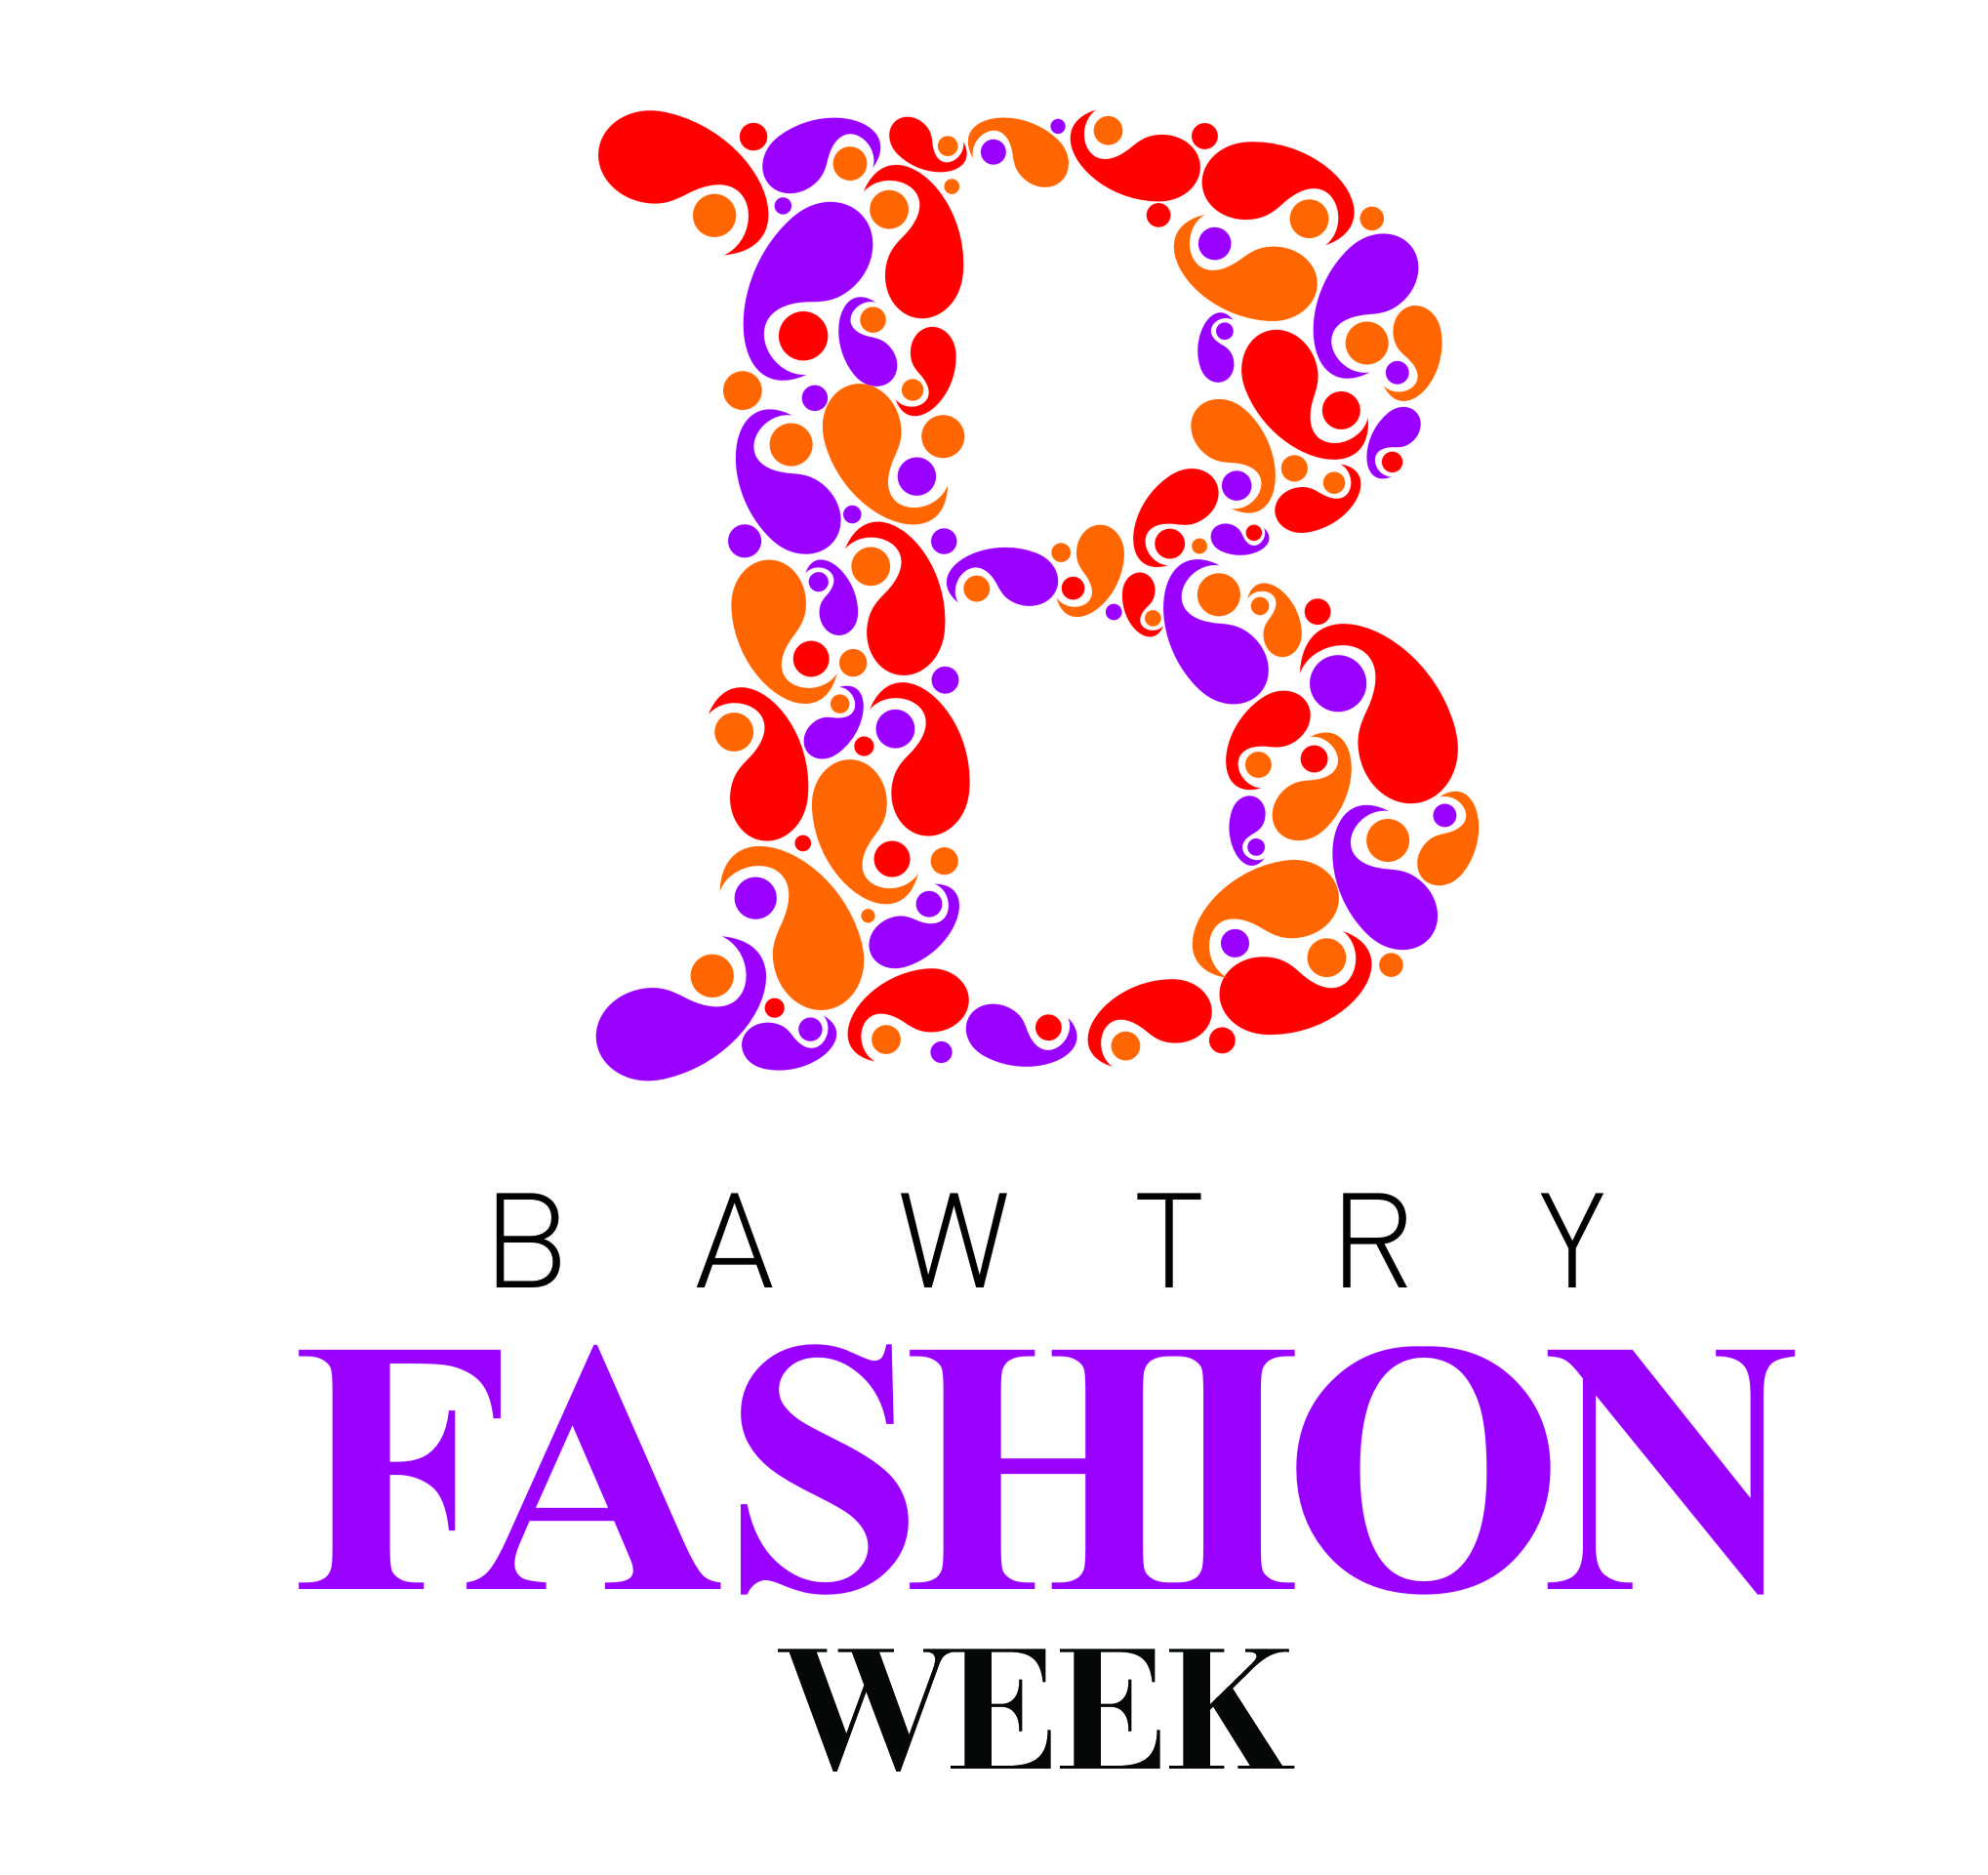 Bawtry Fashion Week